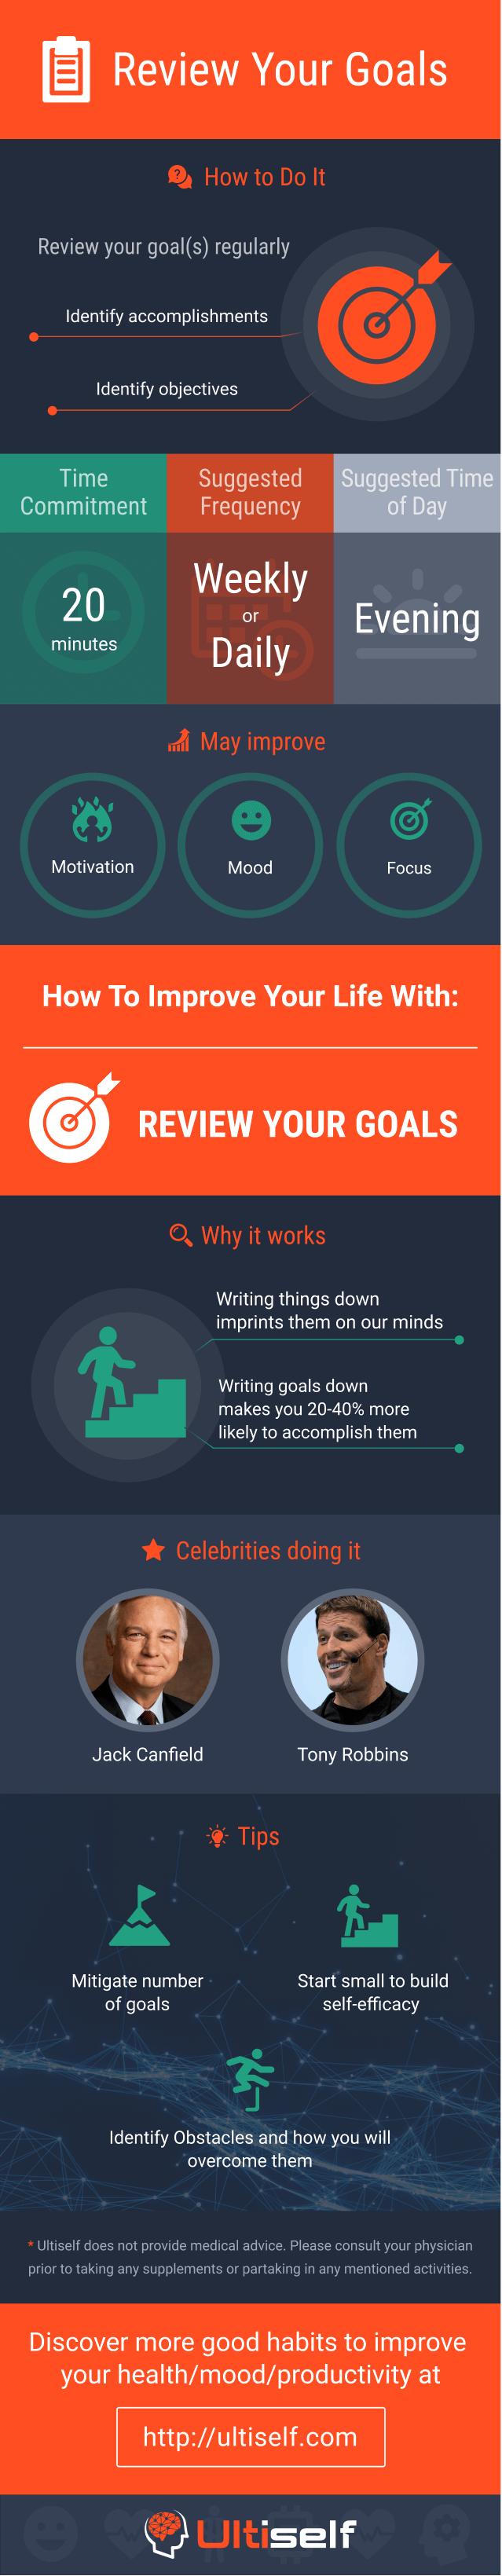 Review Goals infographic